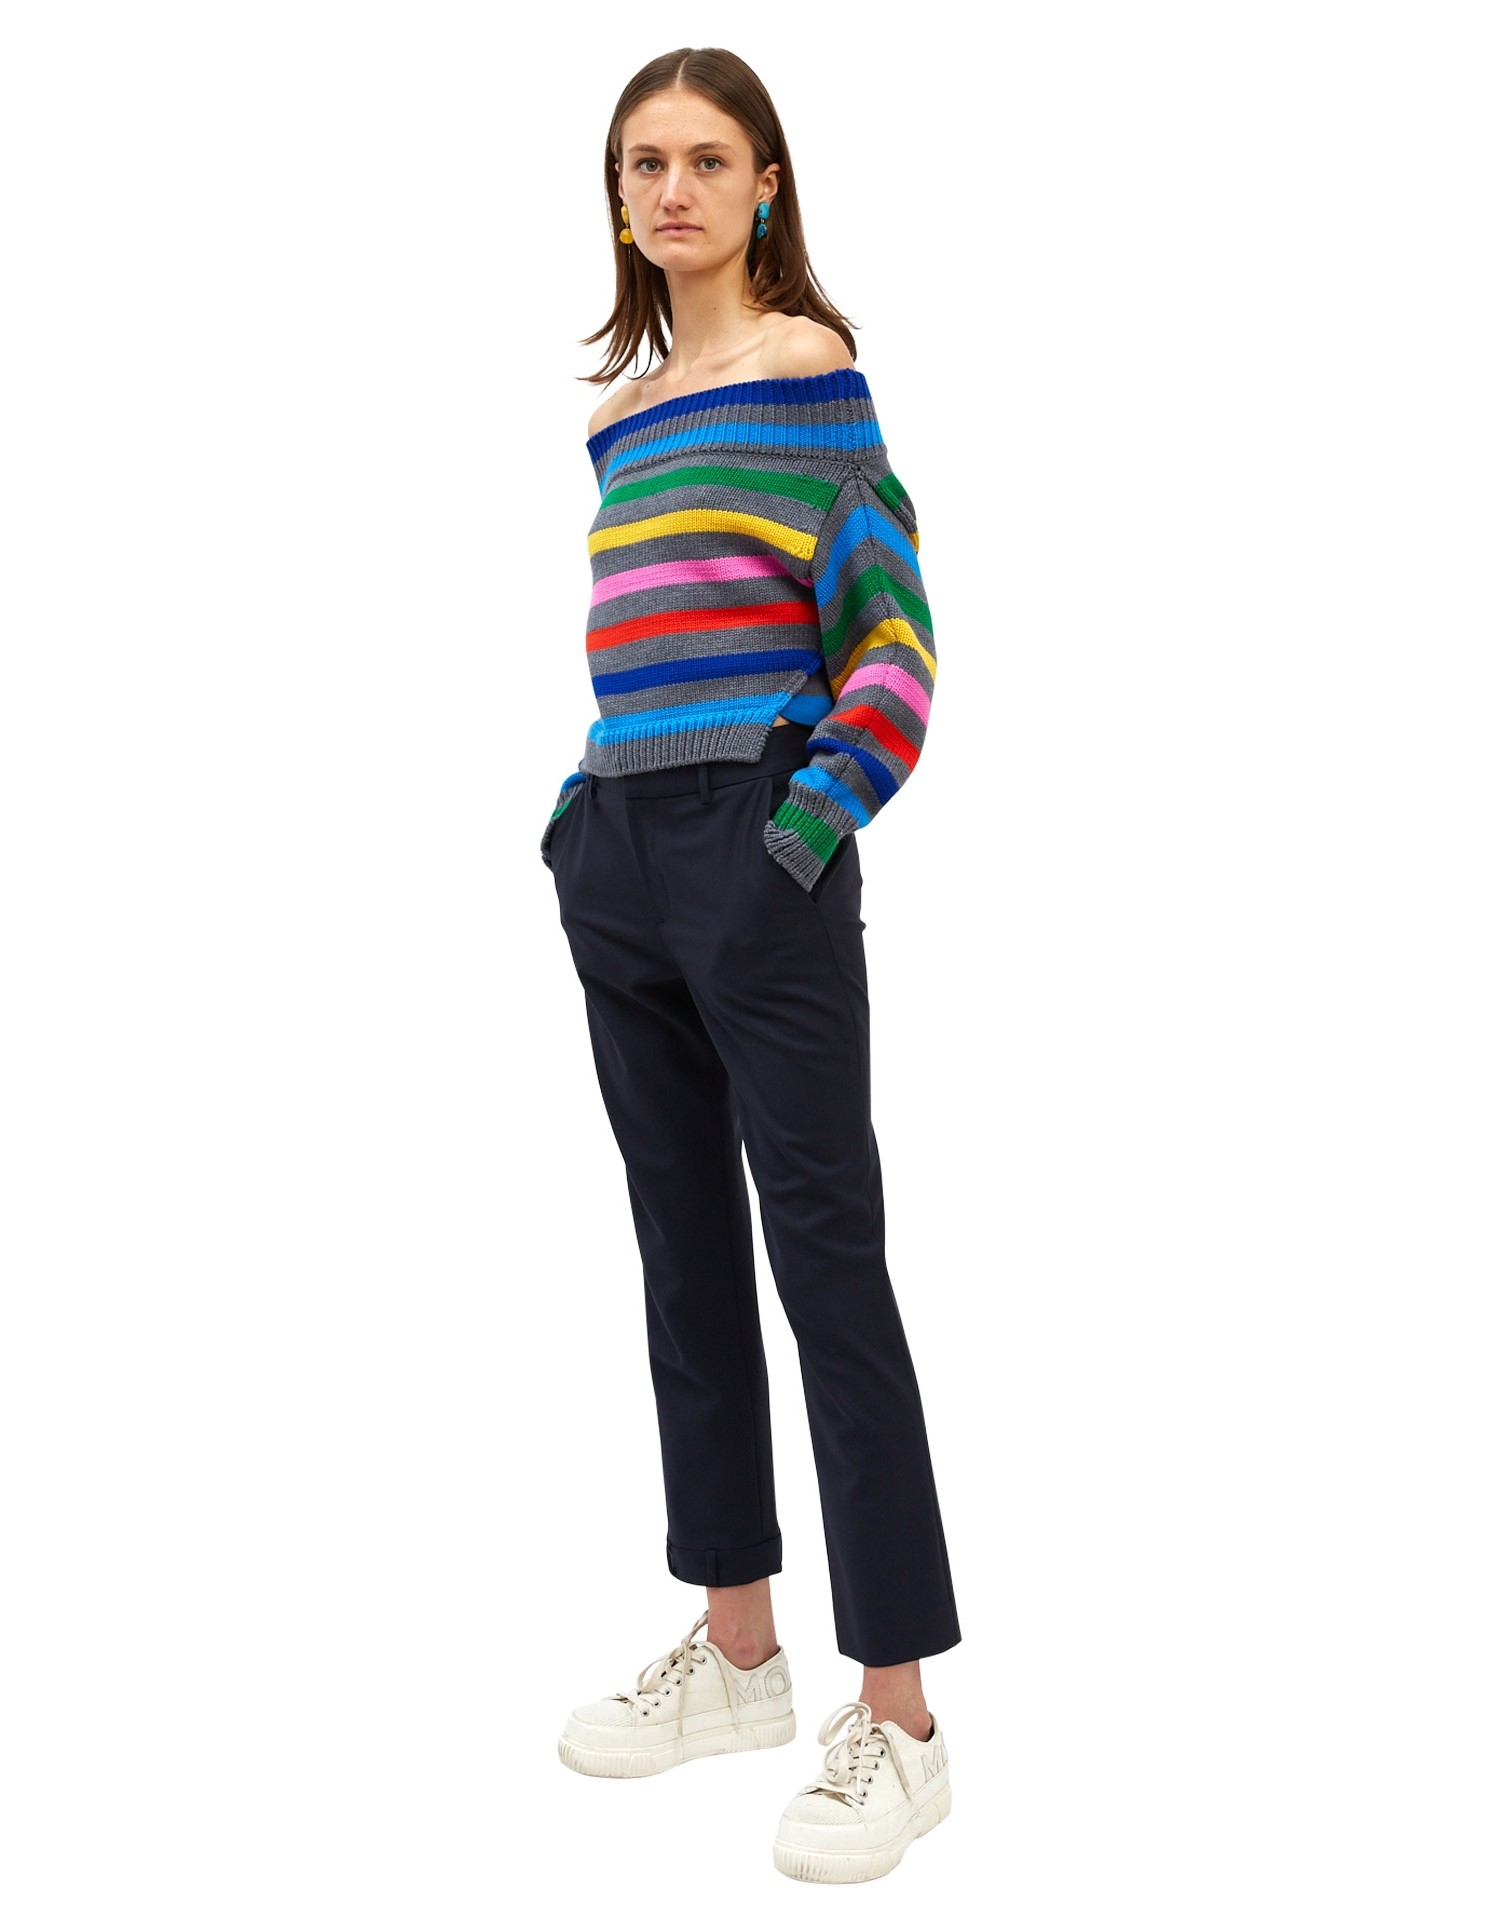 MONSE Cropped Off the Shoulder Sweater on Model Front Angled View